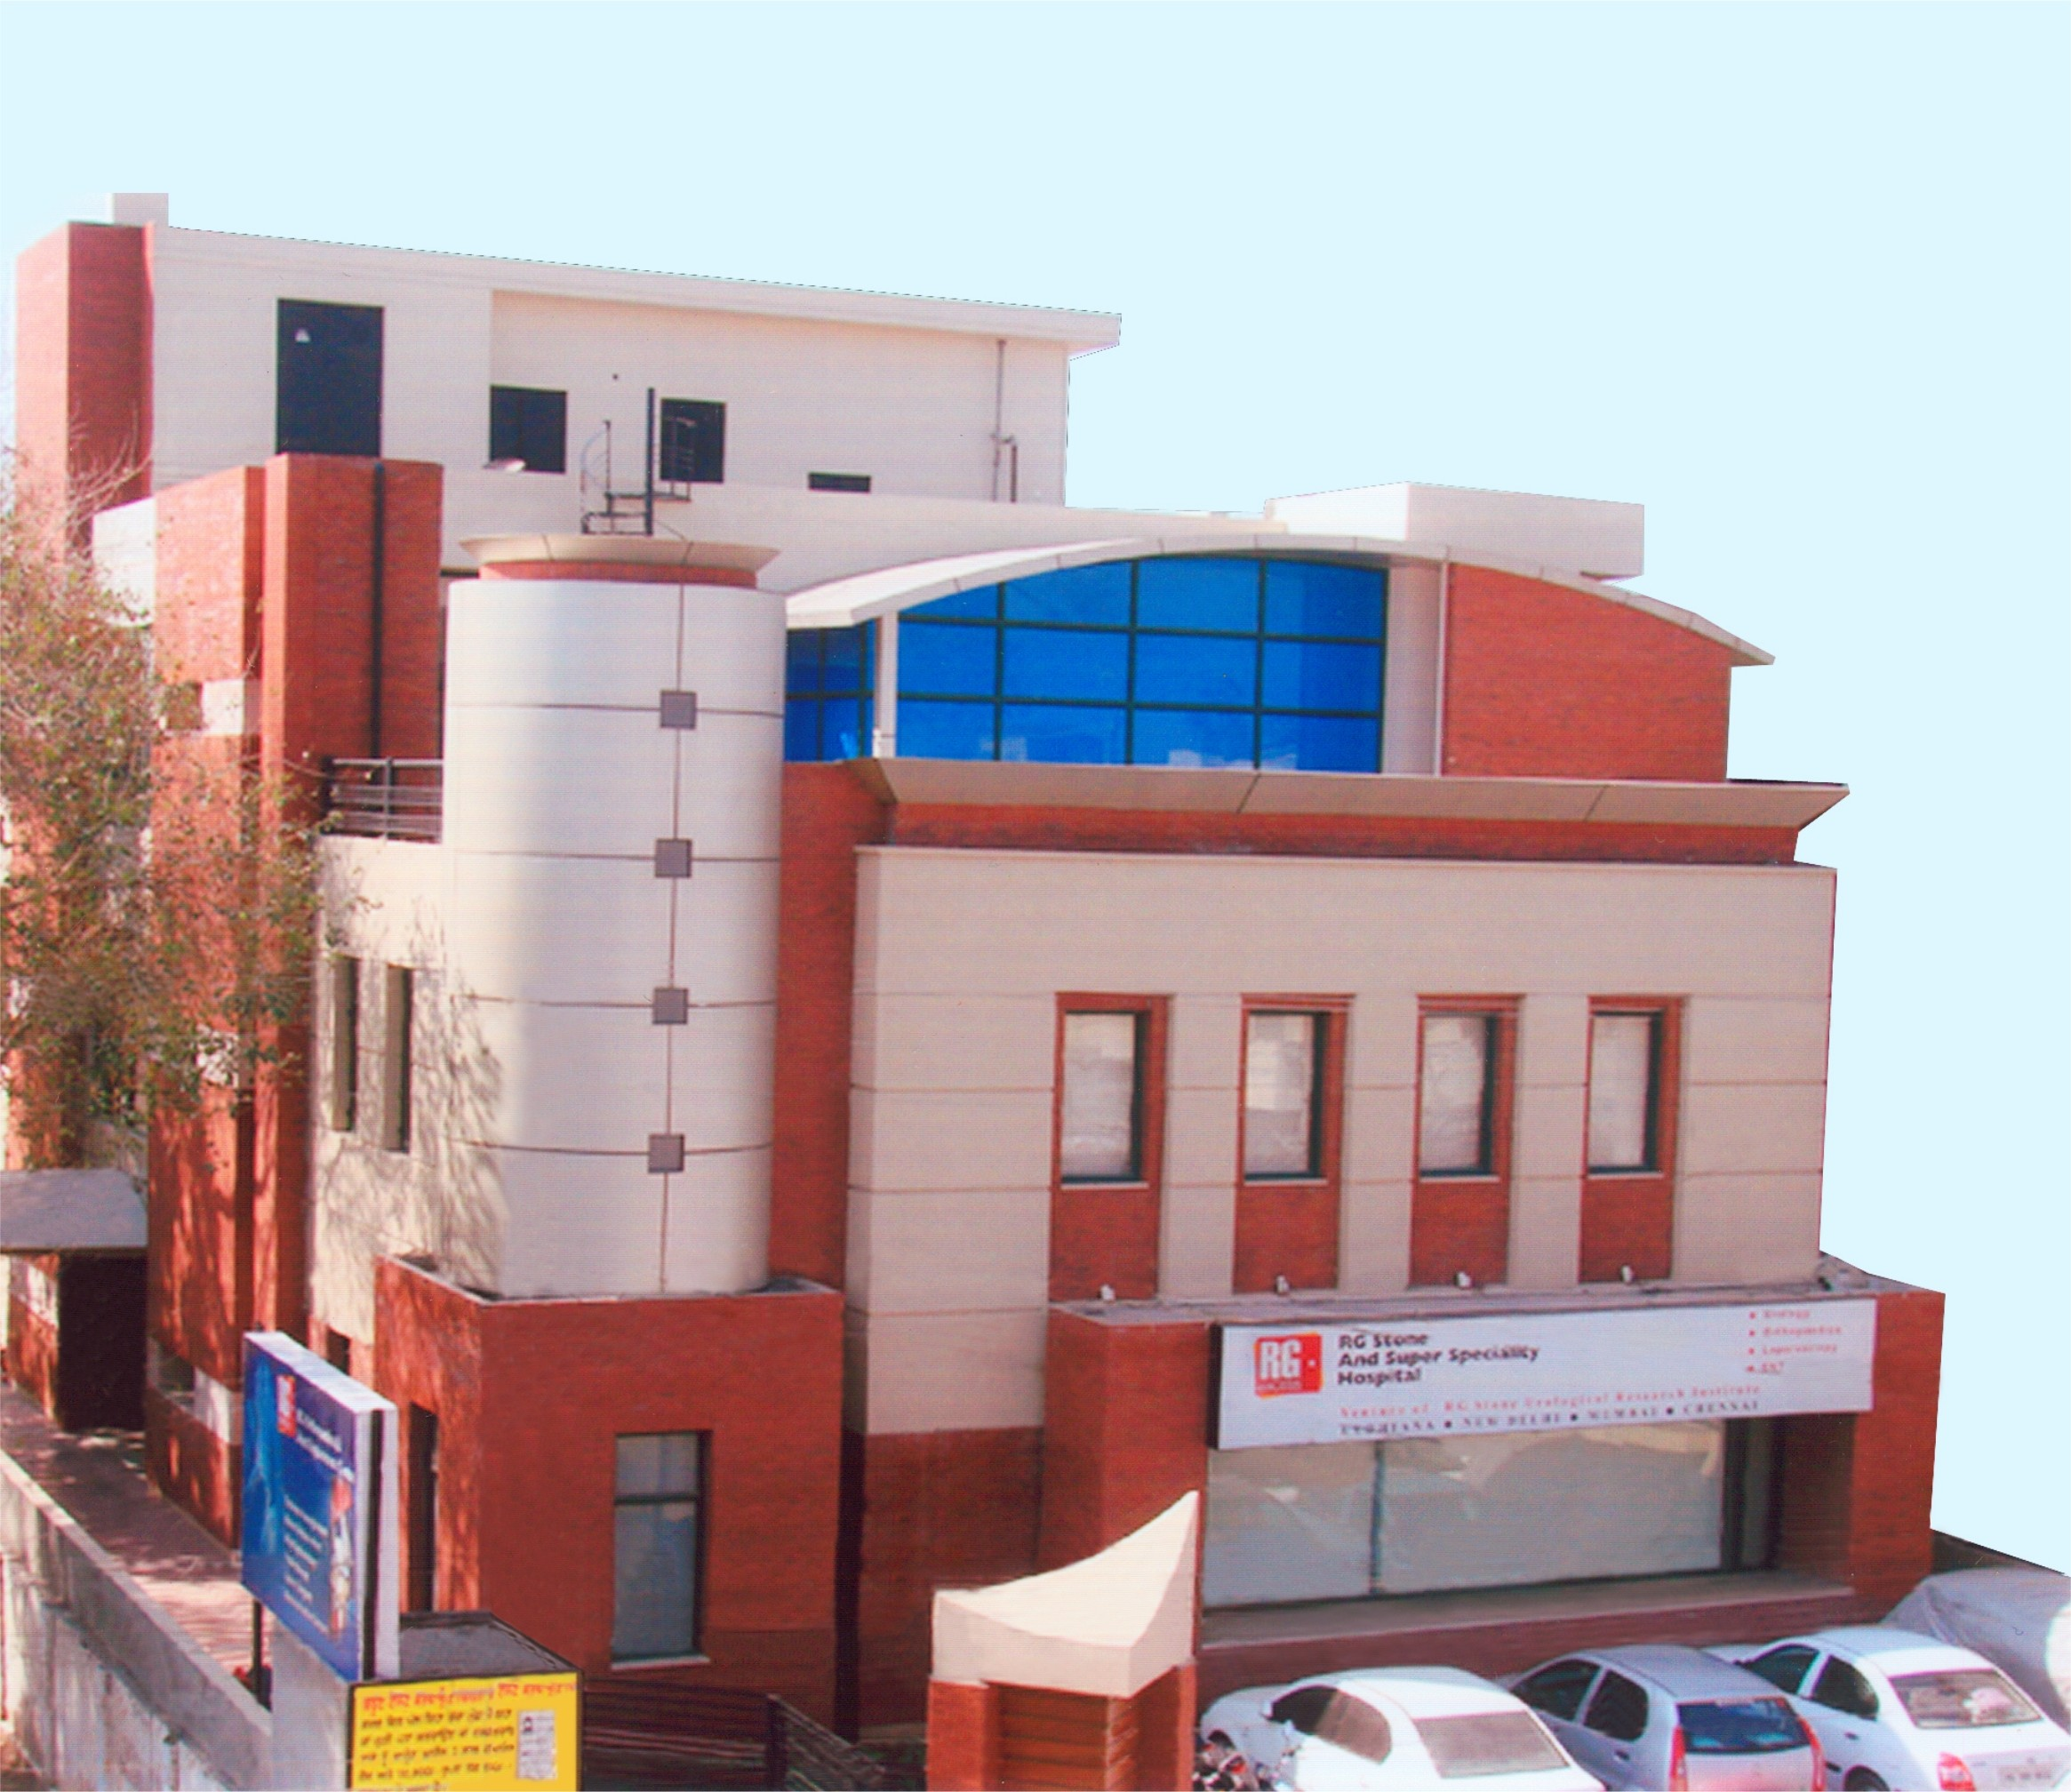 RG Stone Urology Laparoscopy Hospital Ludhiana